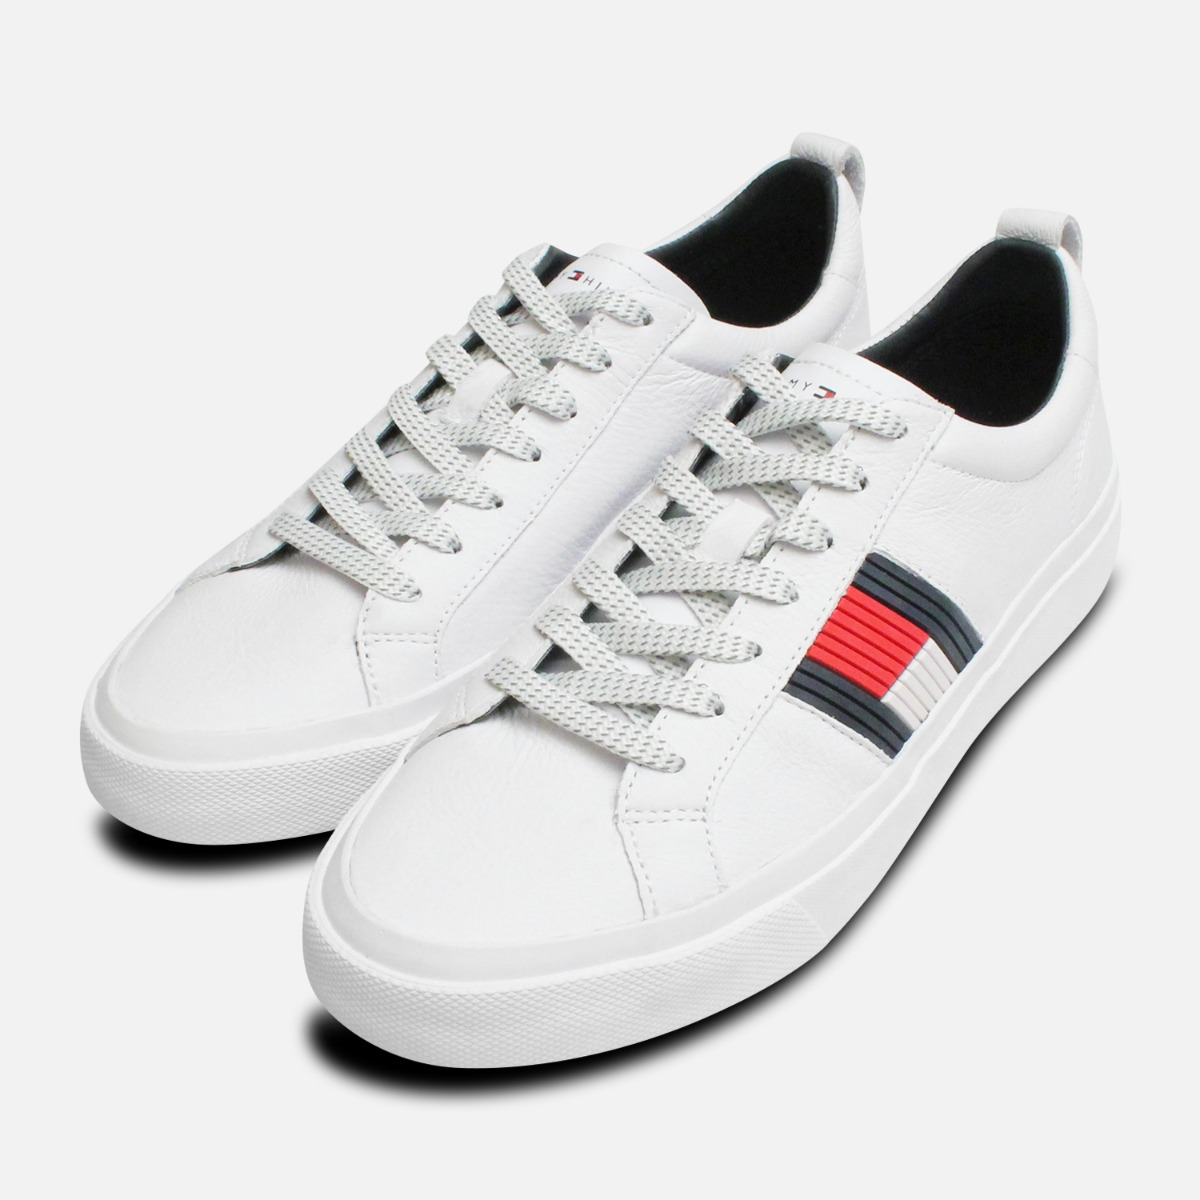 9348f3b0238198 Details about Tommy Hilfiger Flag Detail Leather White Sneakers